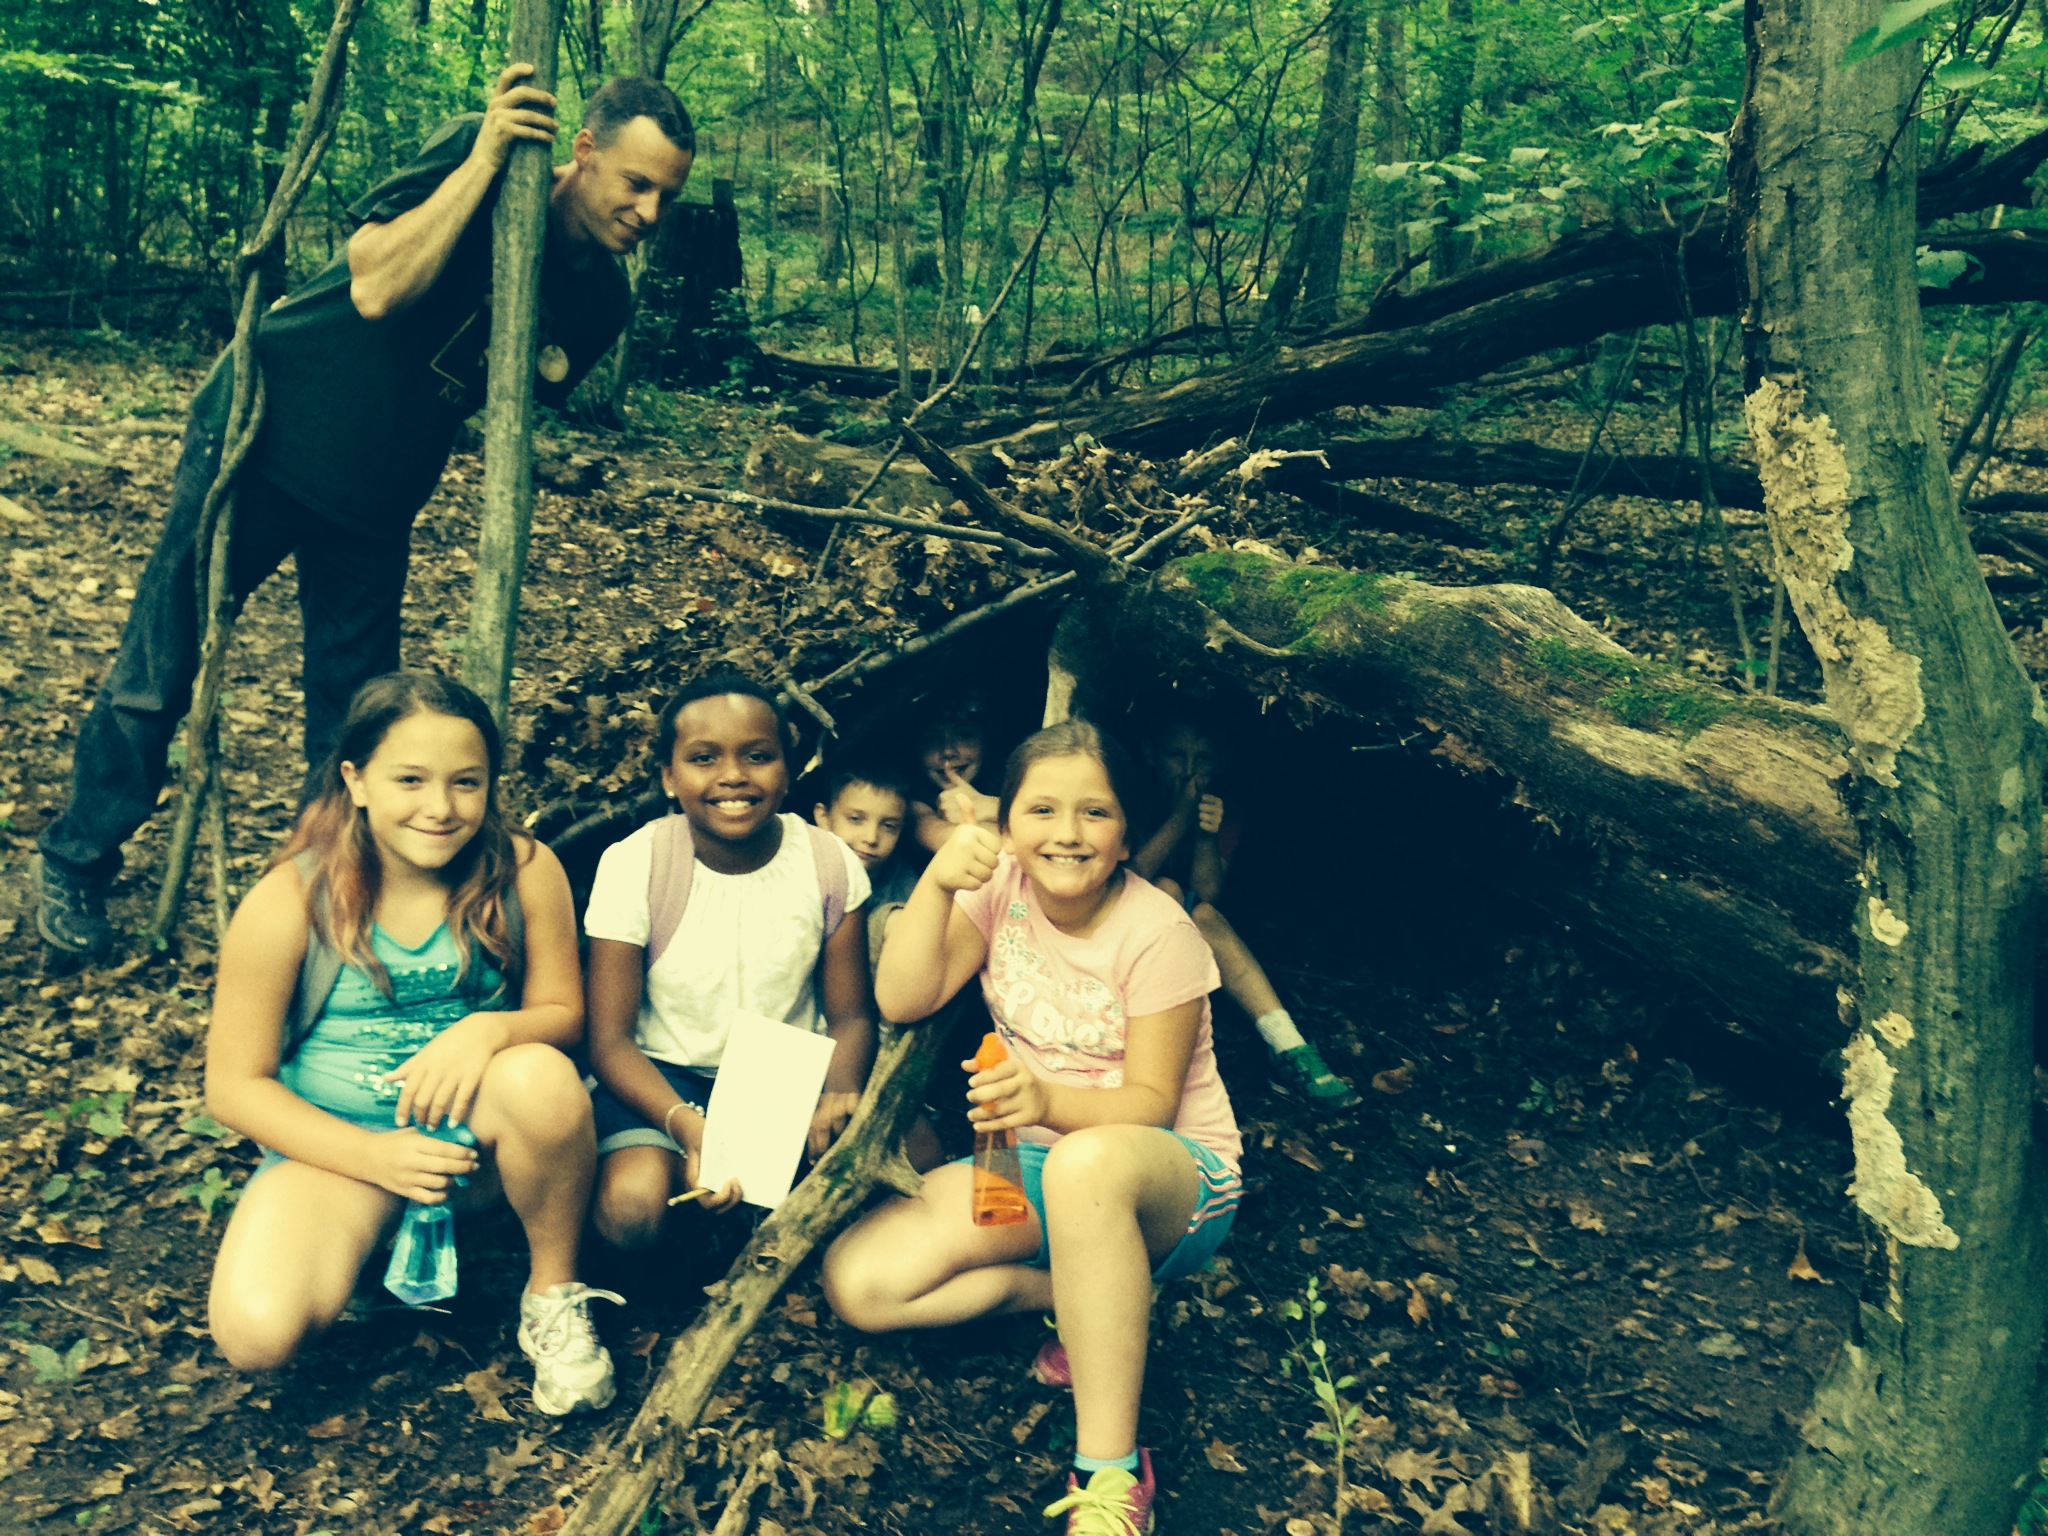 esopus bend nature preserve teacjhing boys and girls the importance of a healthy natural environment